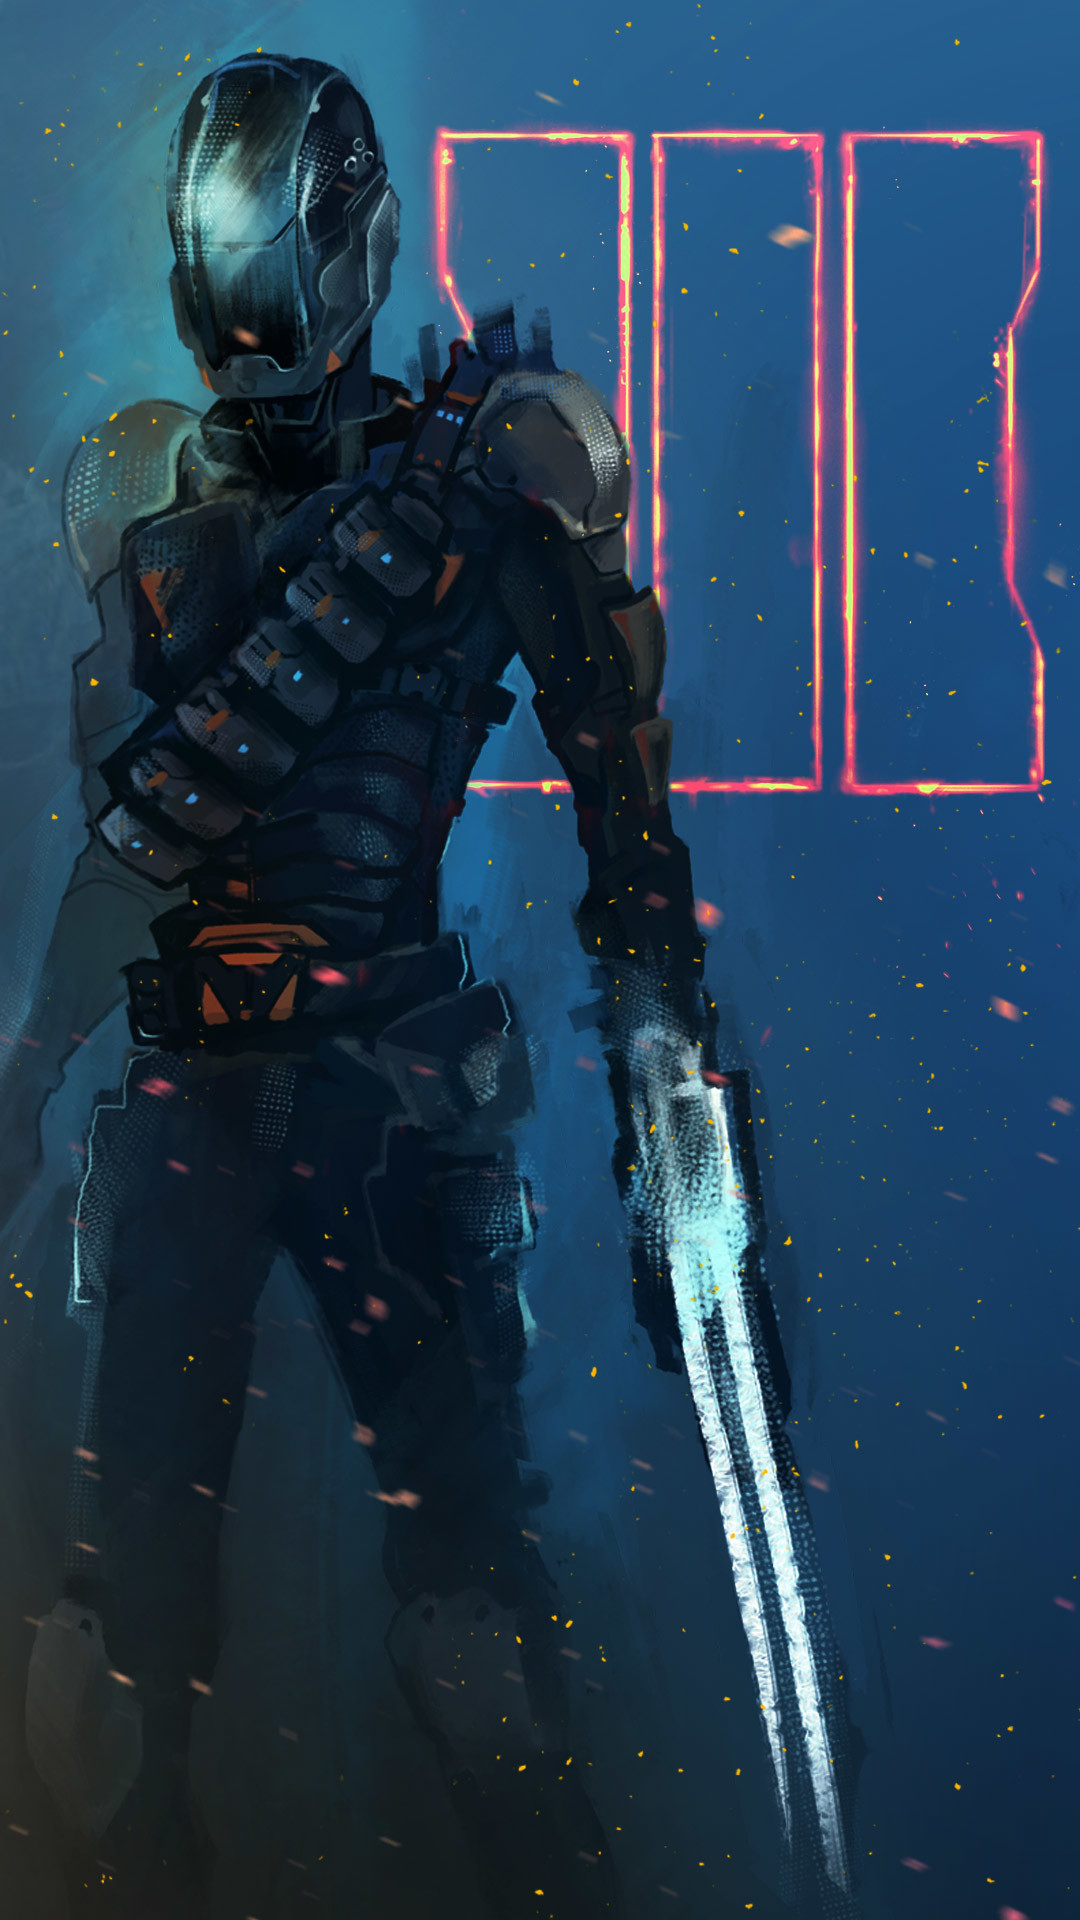 Black ops 3 spectre wallpaper 86 images - 18 by 9 wallpaper ...